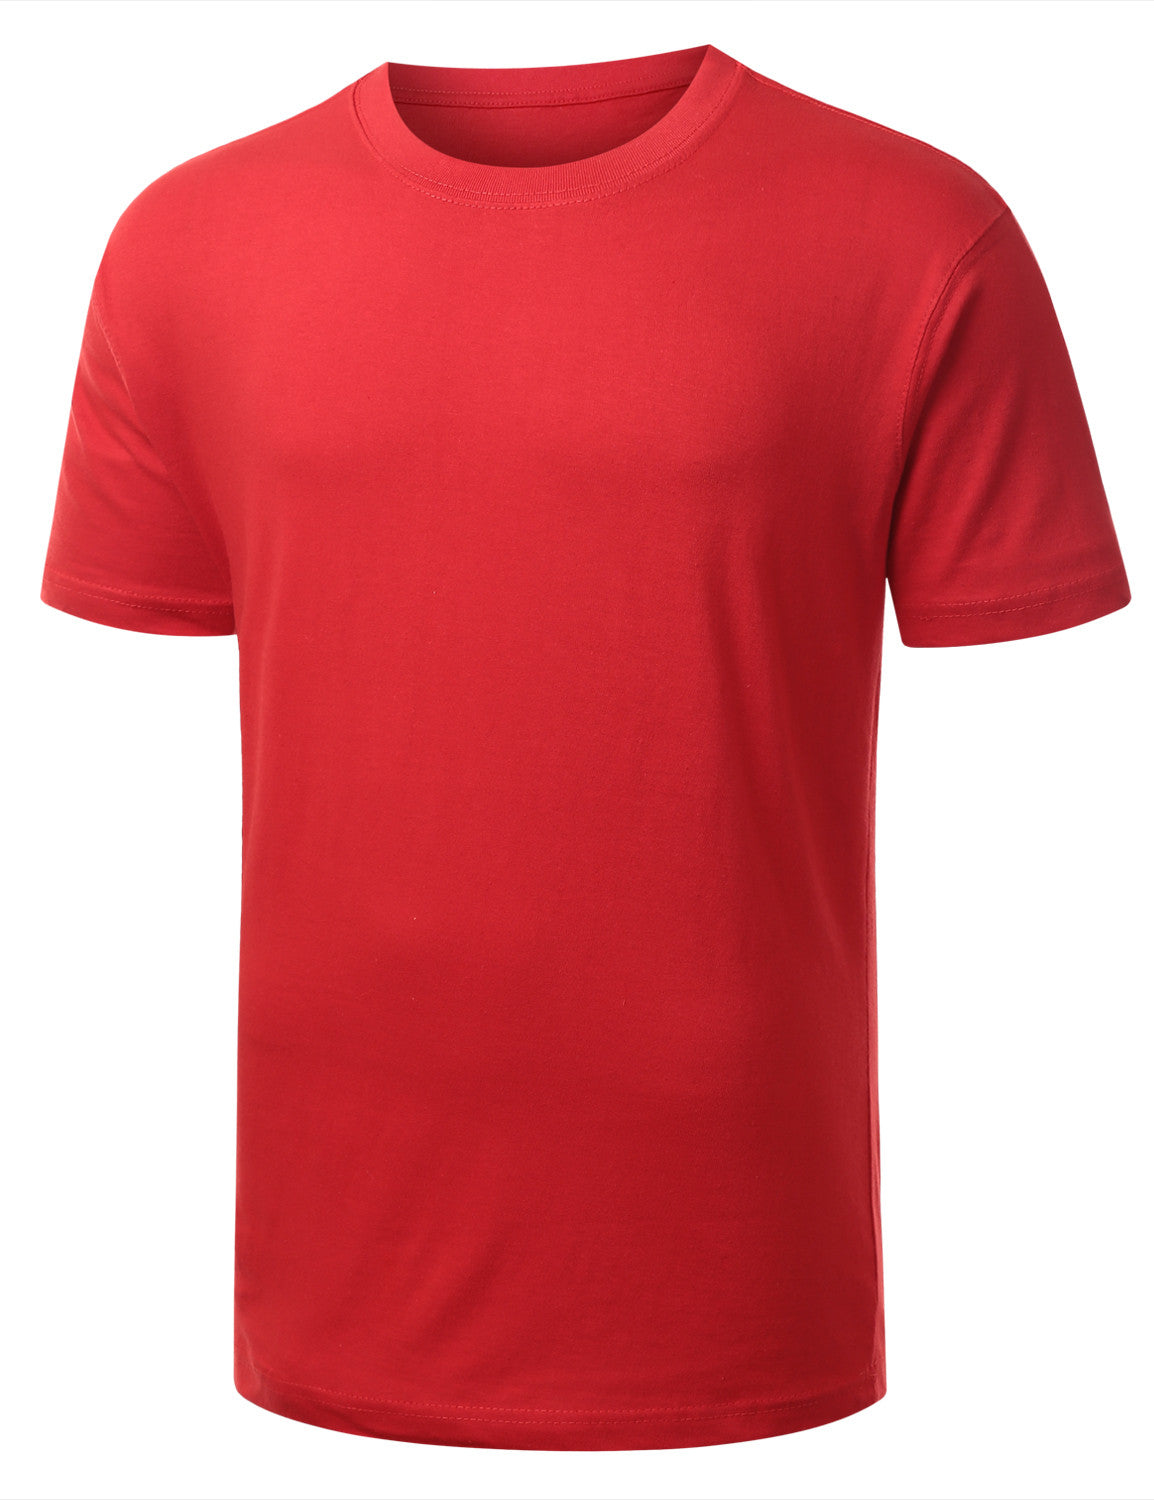 RED Classic Crewneck T Shirt - URBANCREWS